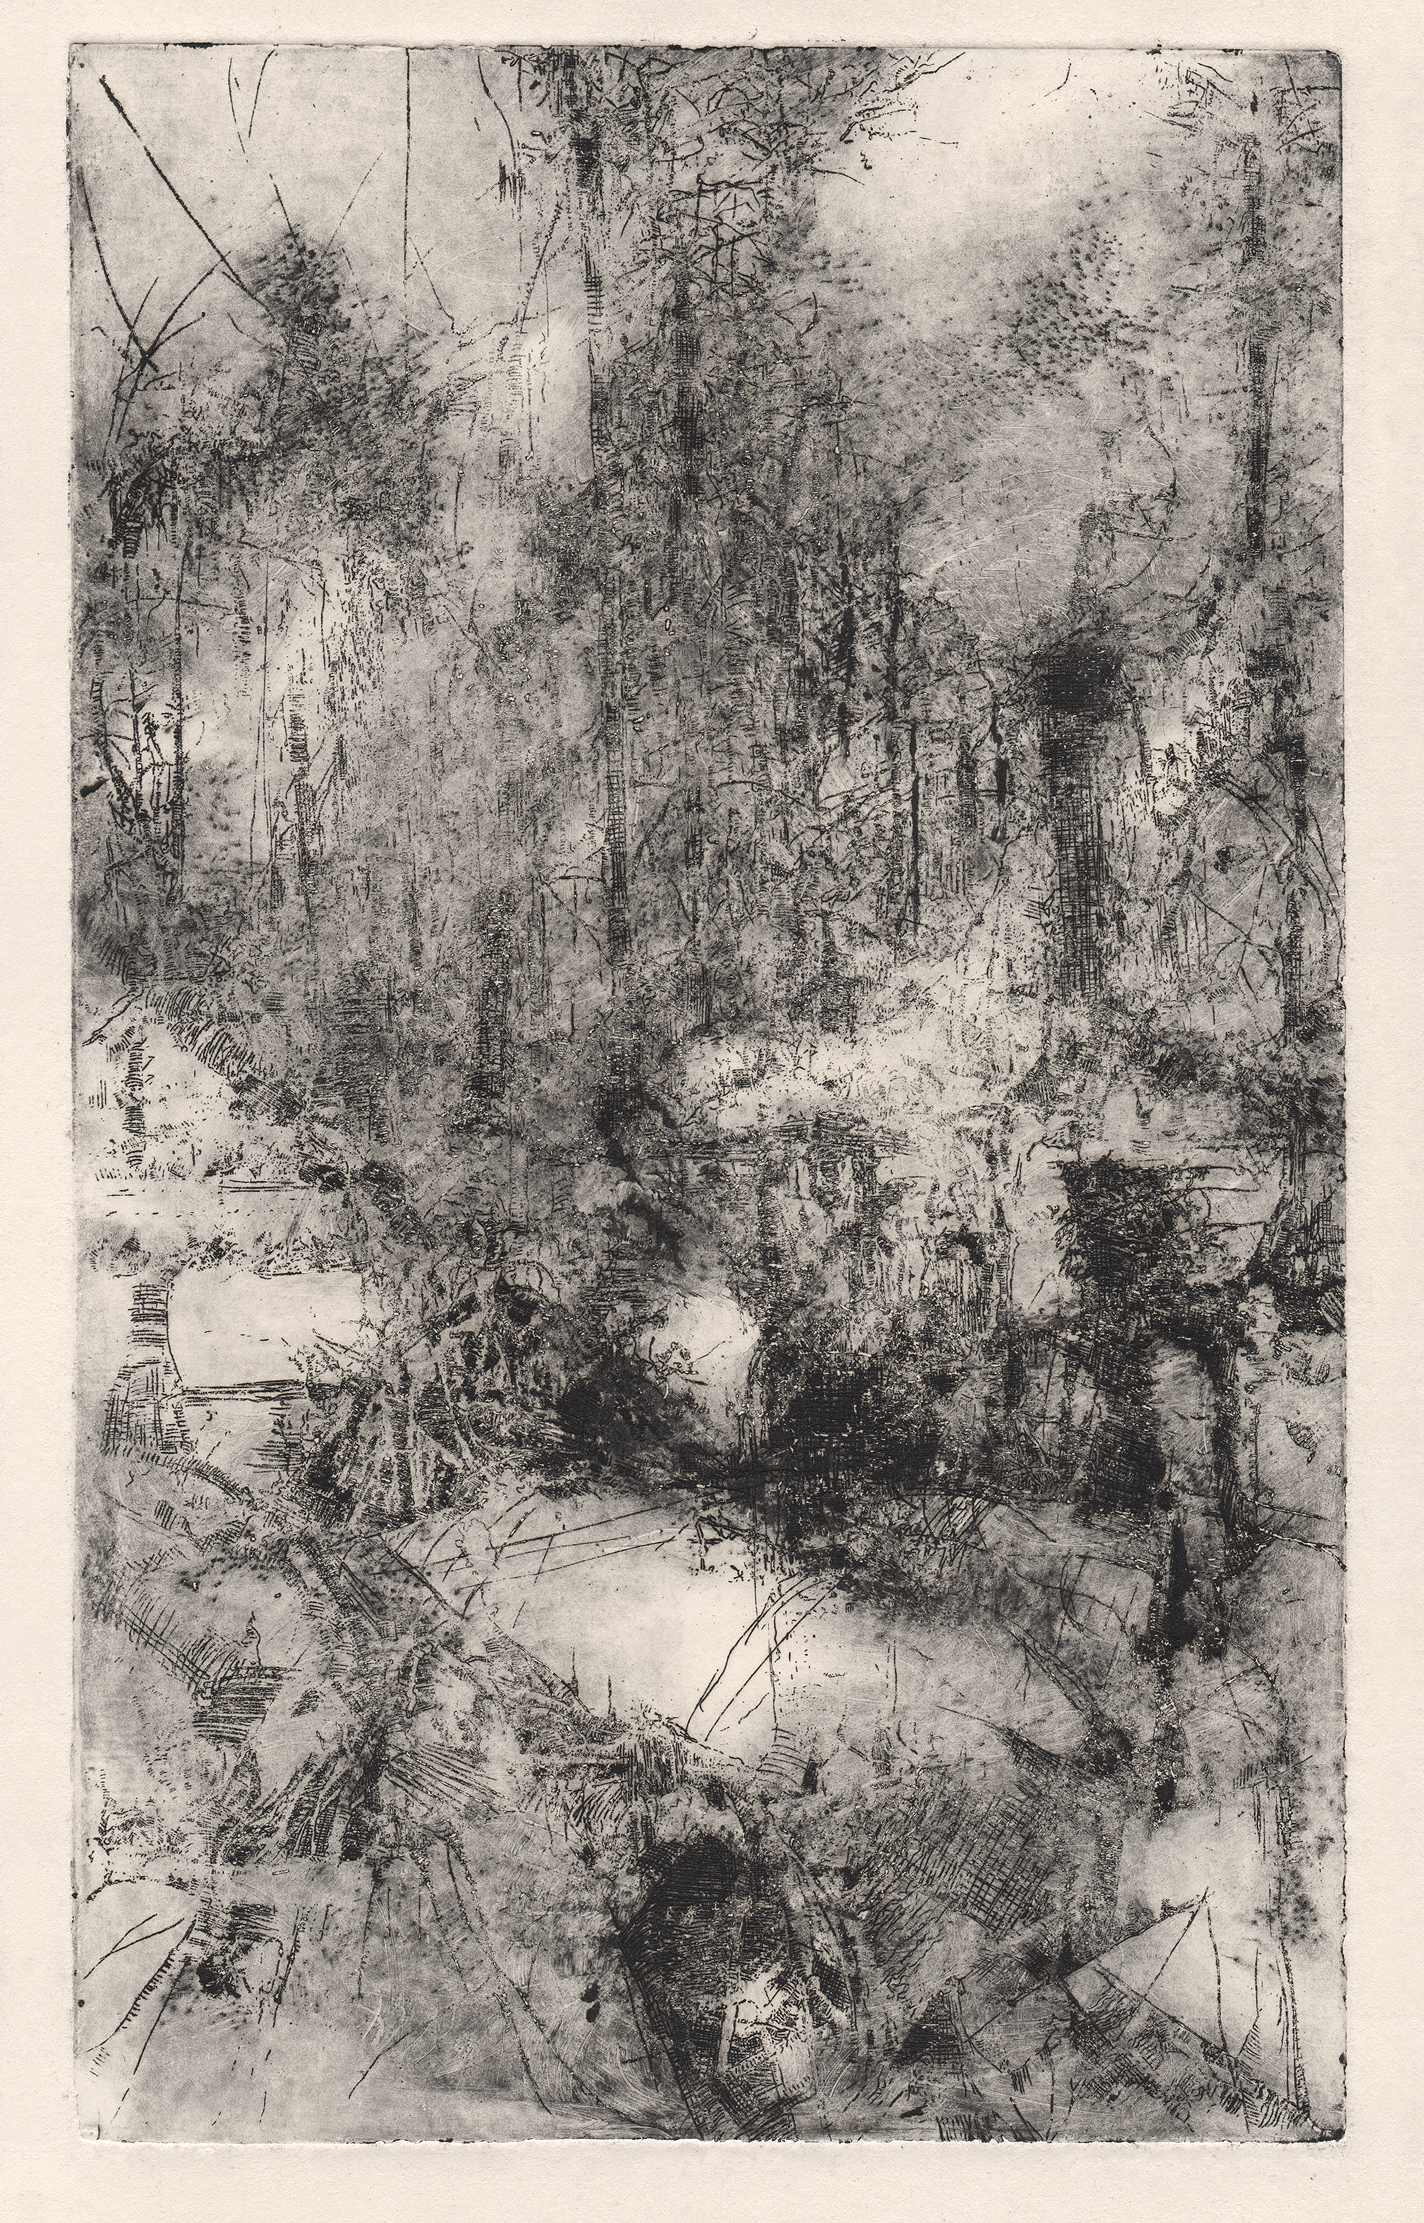 Dead Marshes I-III, etching.